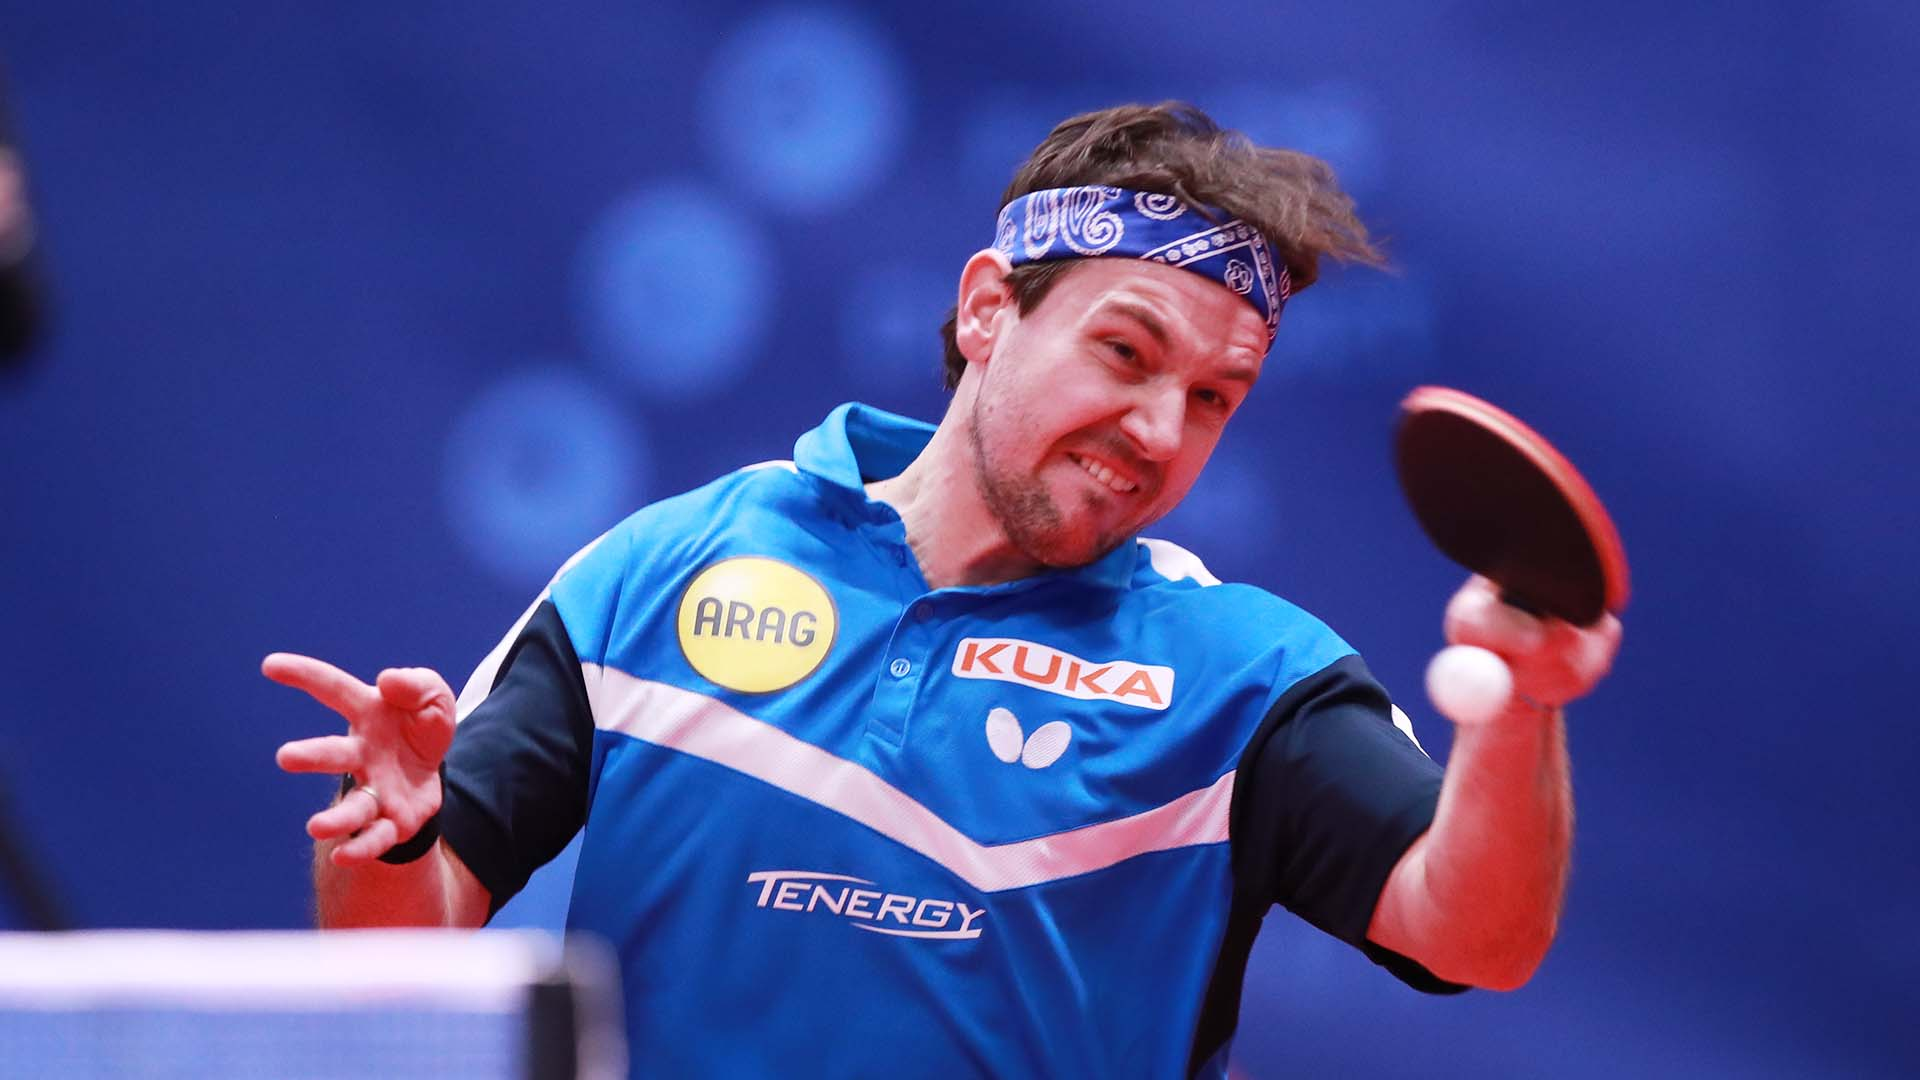 Timo Boll Once Again On Top Of The World